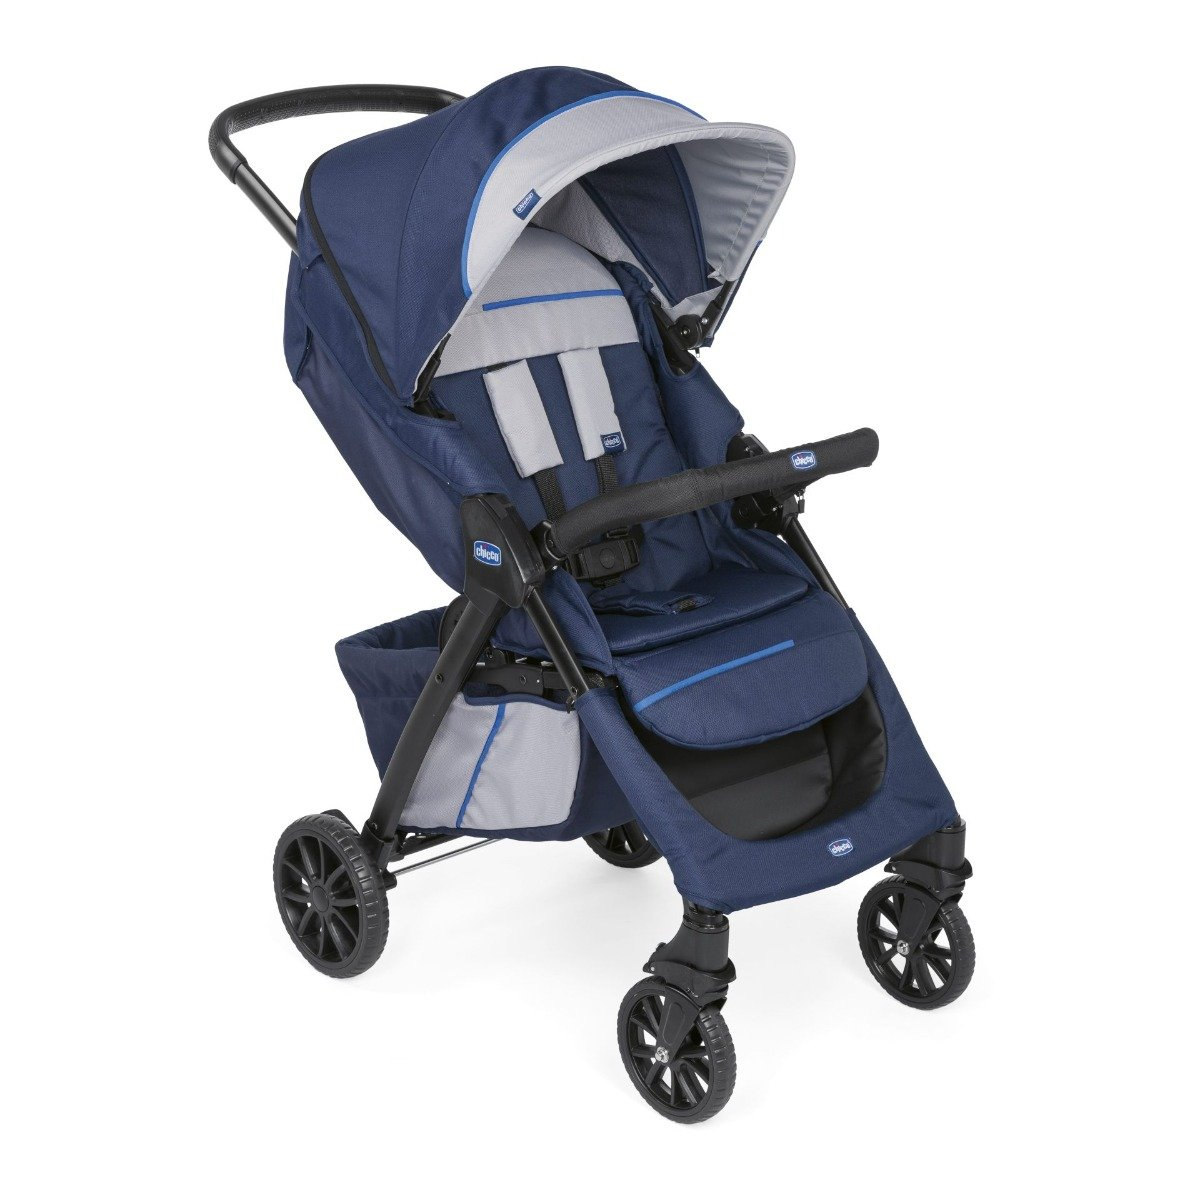 Carucior Chicco 3 in 1 Kwik Trio All In One, Bleumarin